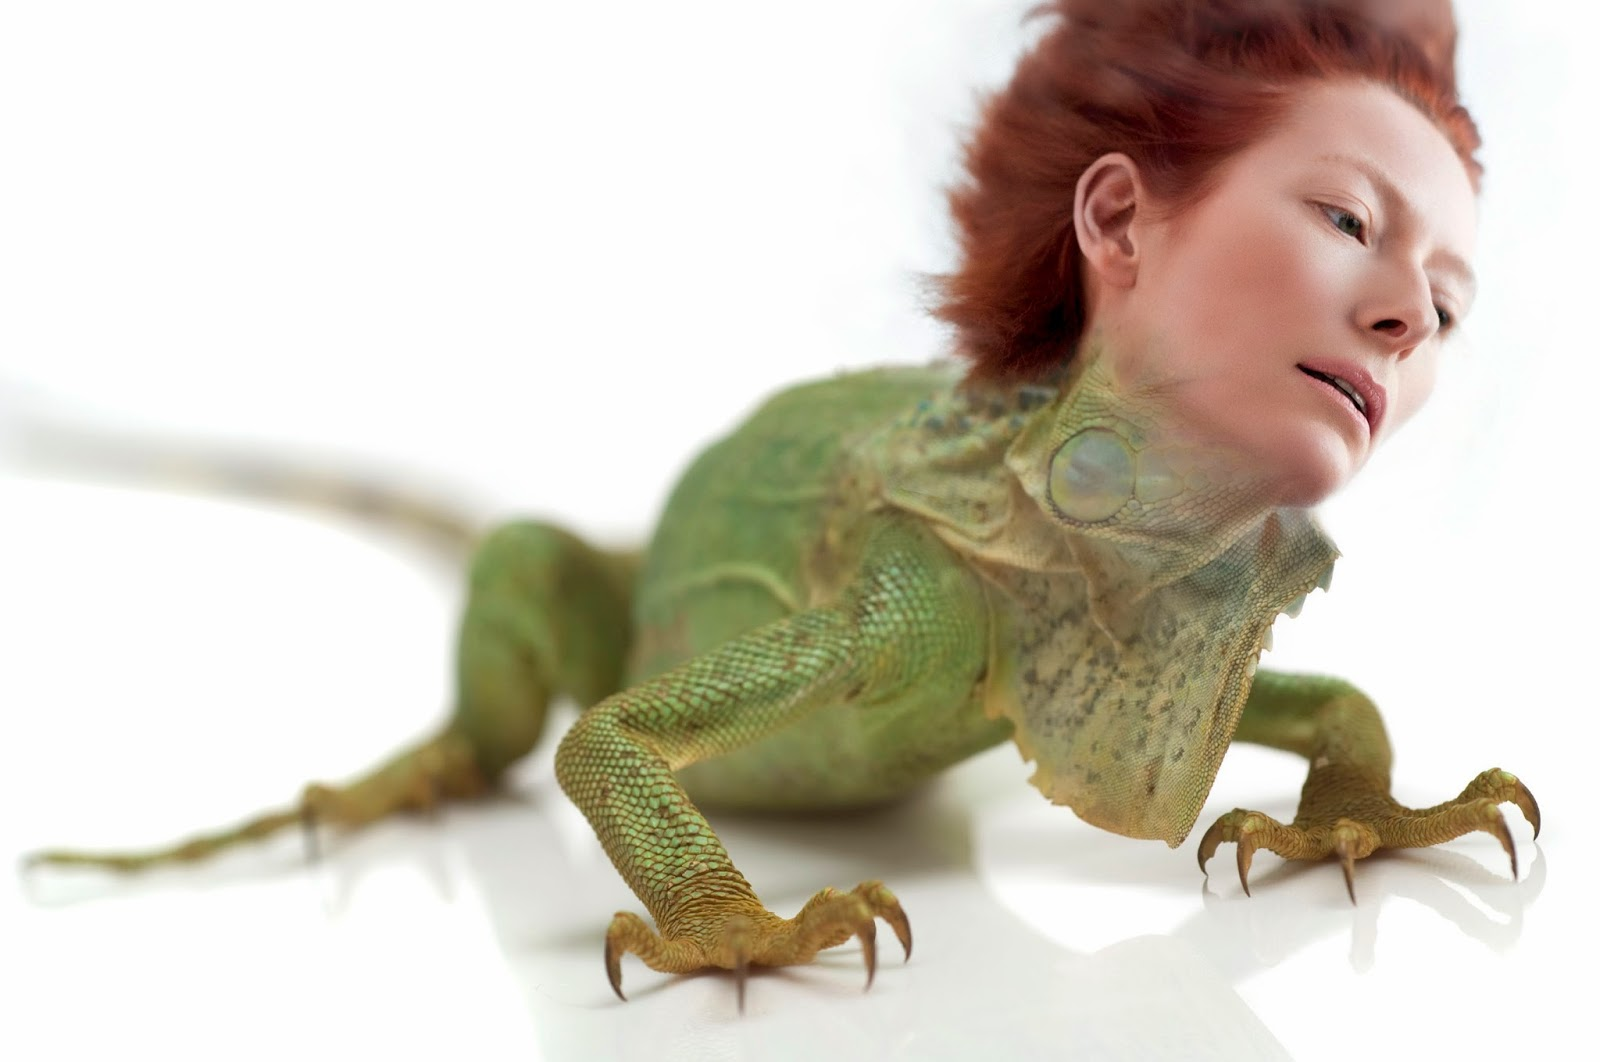 tilda-swinton-lizard, tilda-swinton-animal, tilda-swinton-reptile, tilda-swinton-red-hair, tilda-swinton-face